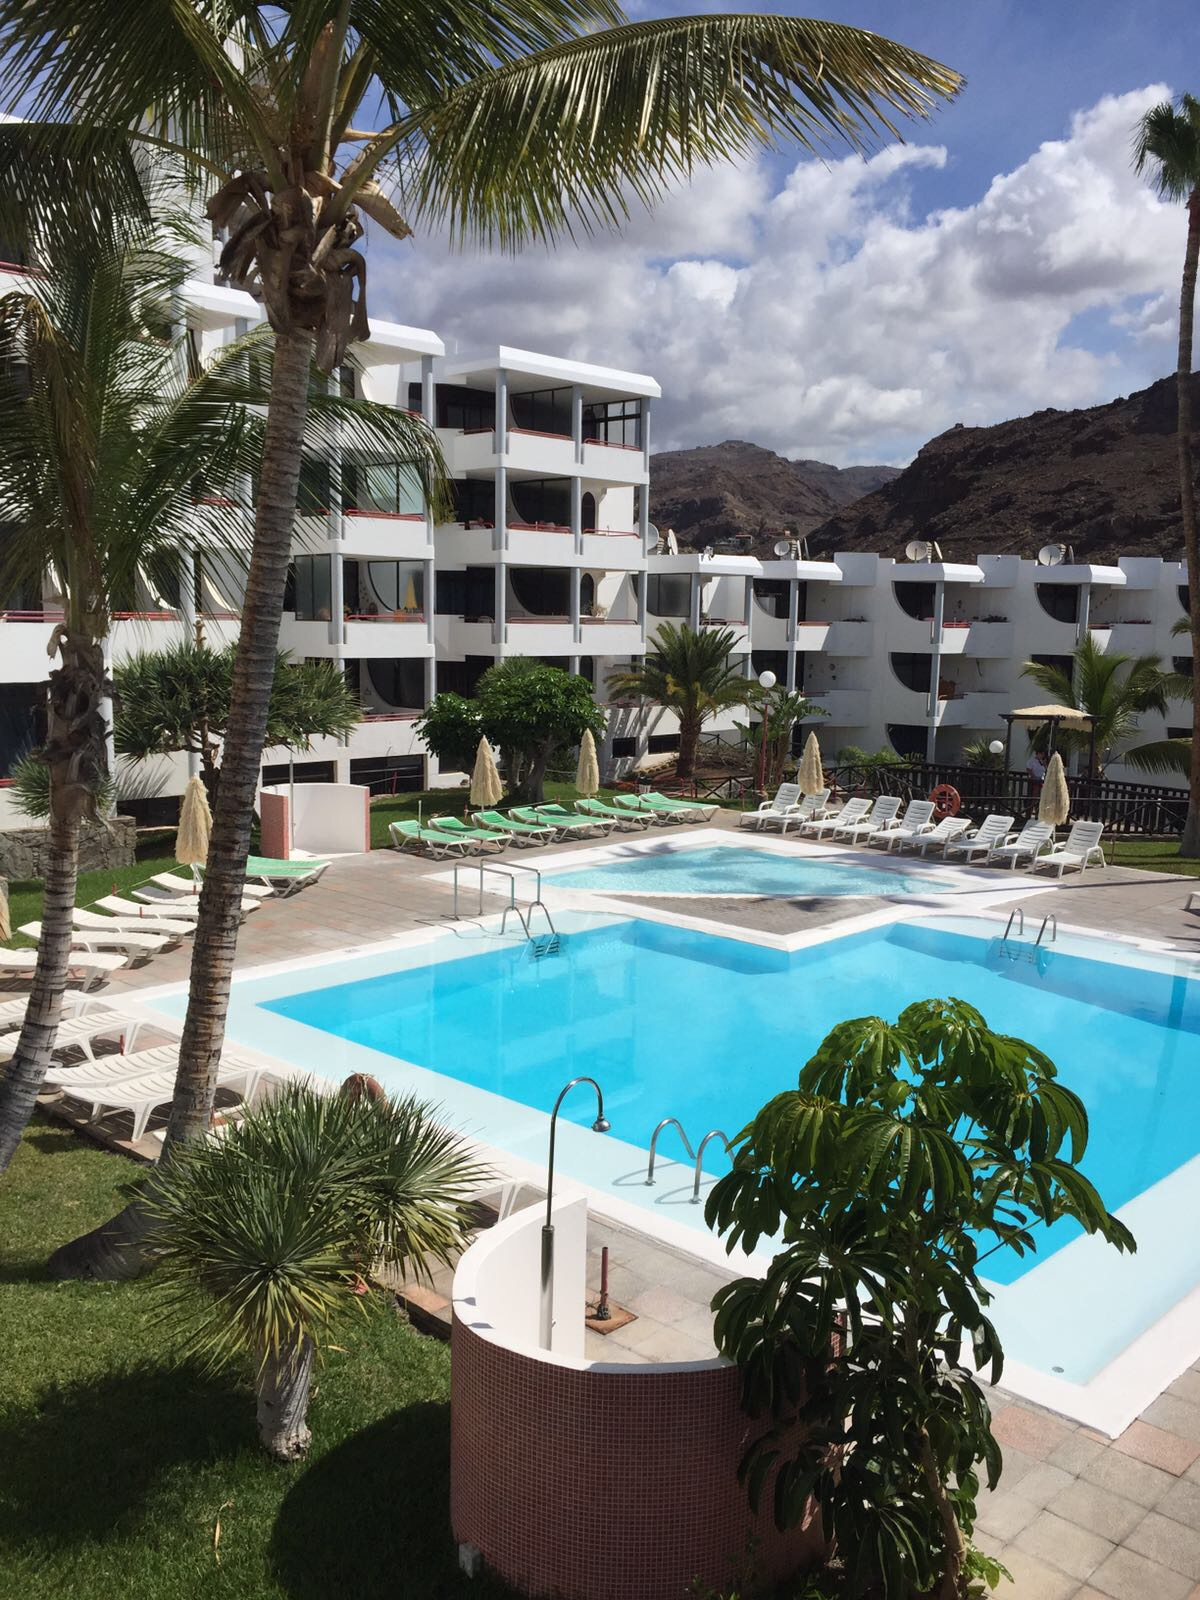 Apartment – El Cardenal